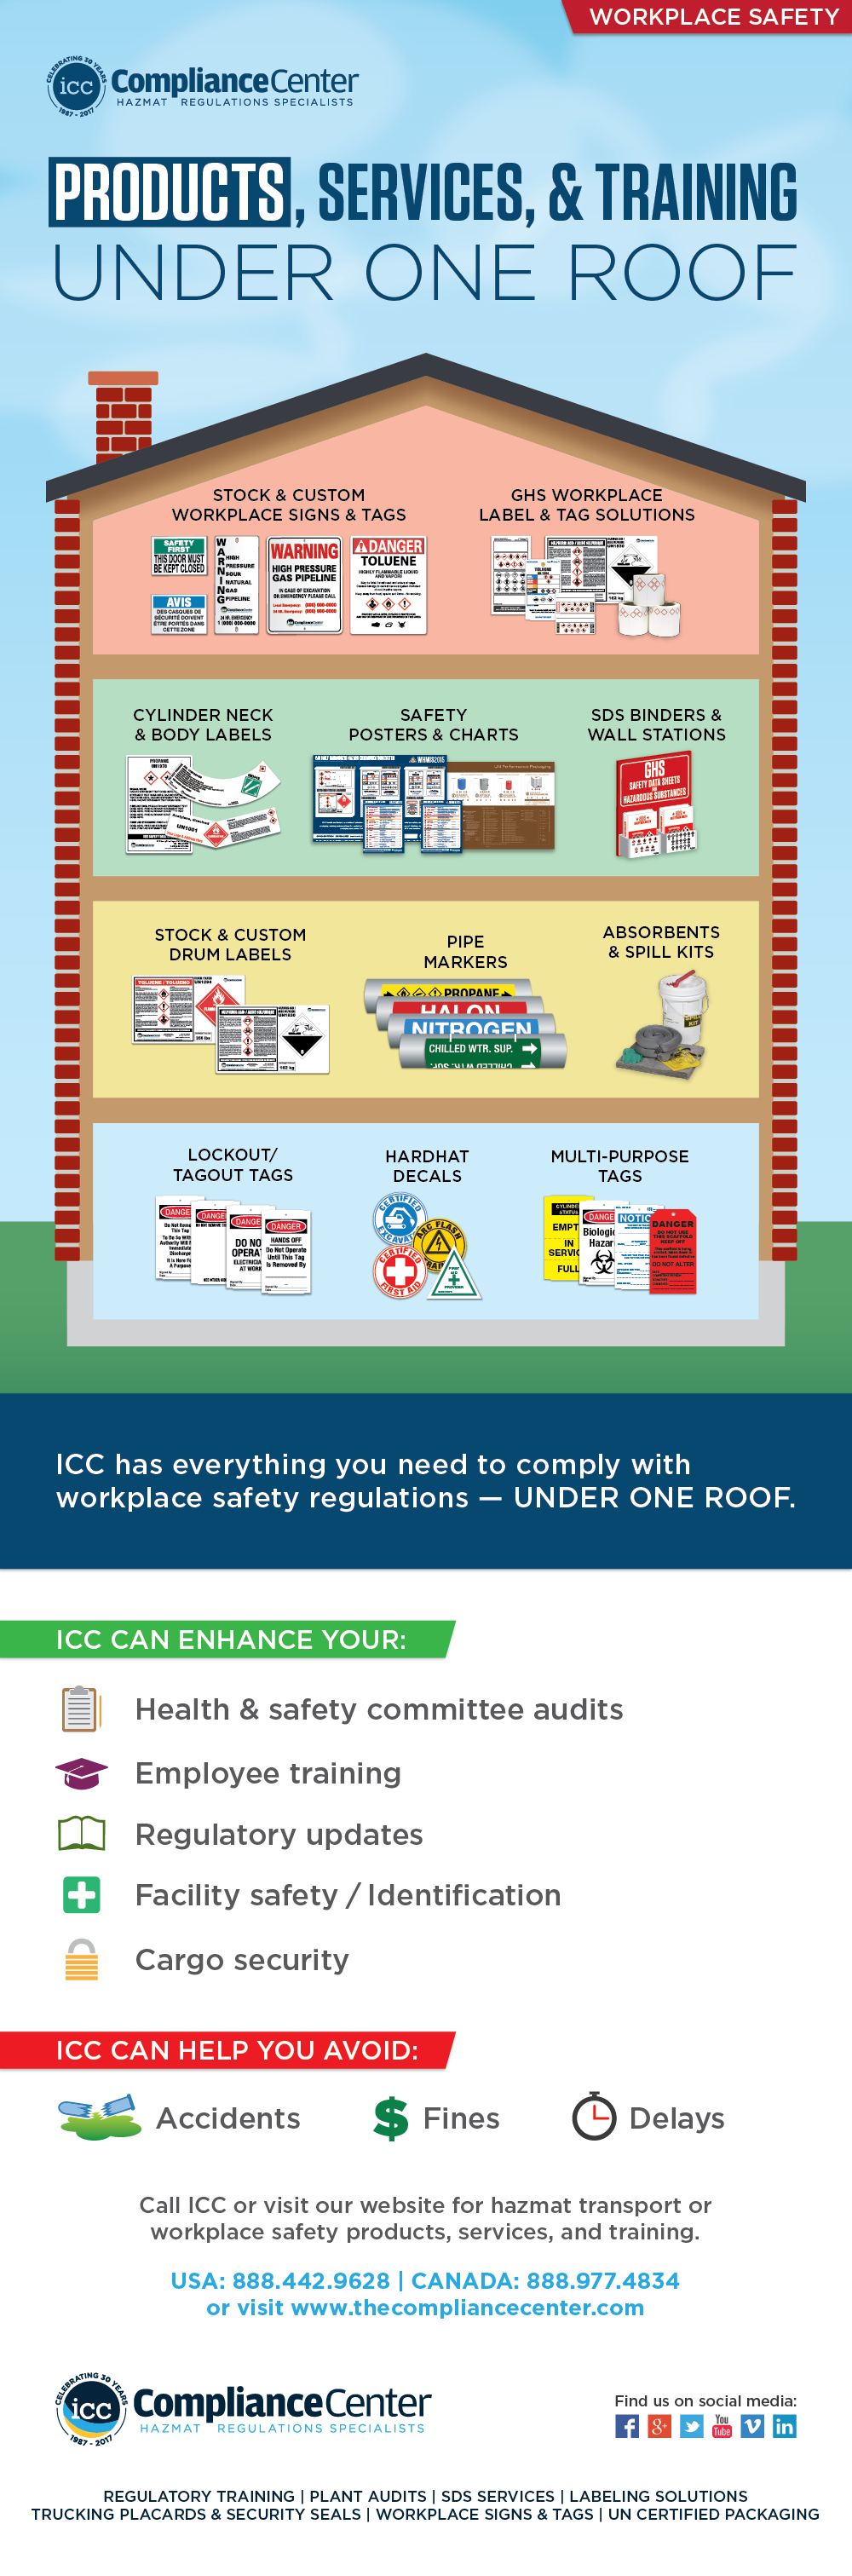 ICC Workplace Safety Products